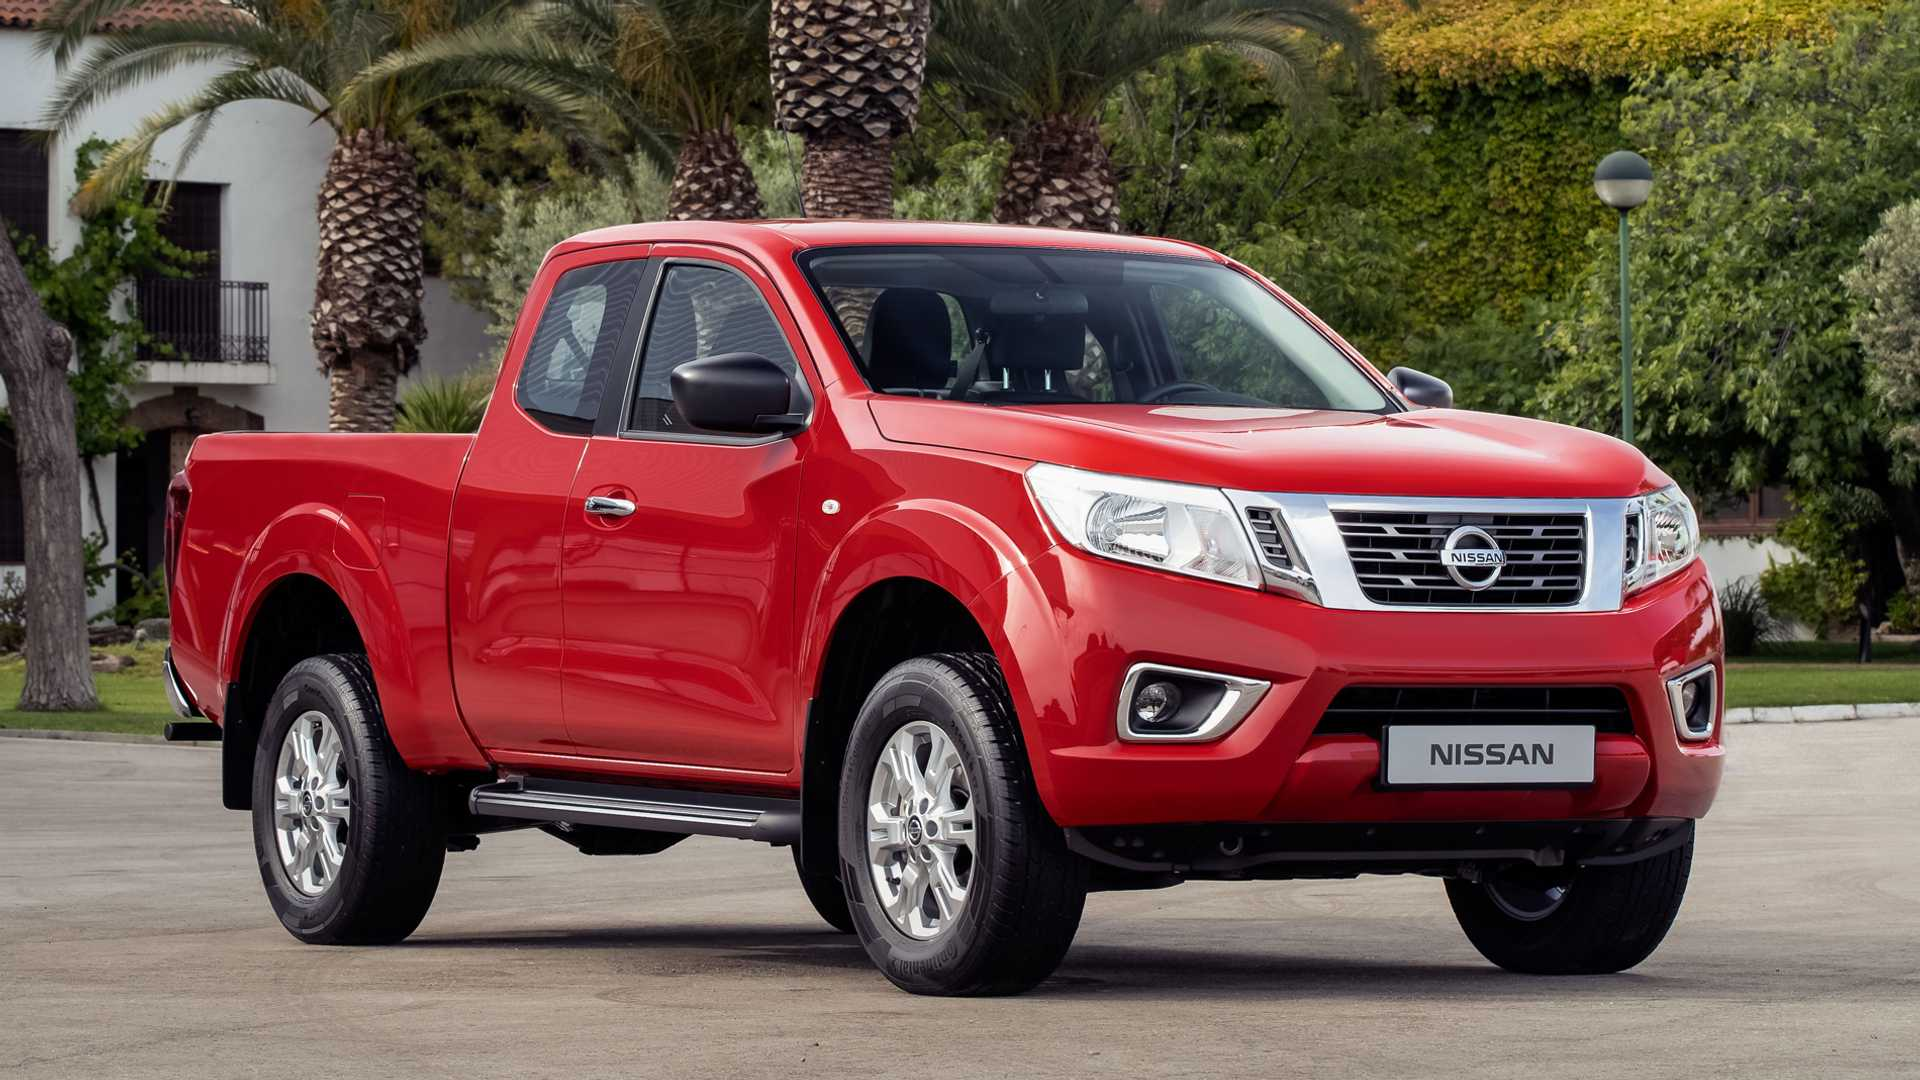 80 Great 2019 Nissan Navara Exterior and Interior with 2019 Nissan Navara